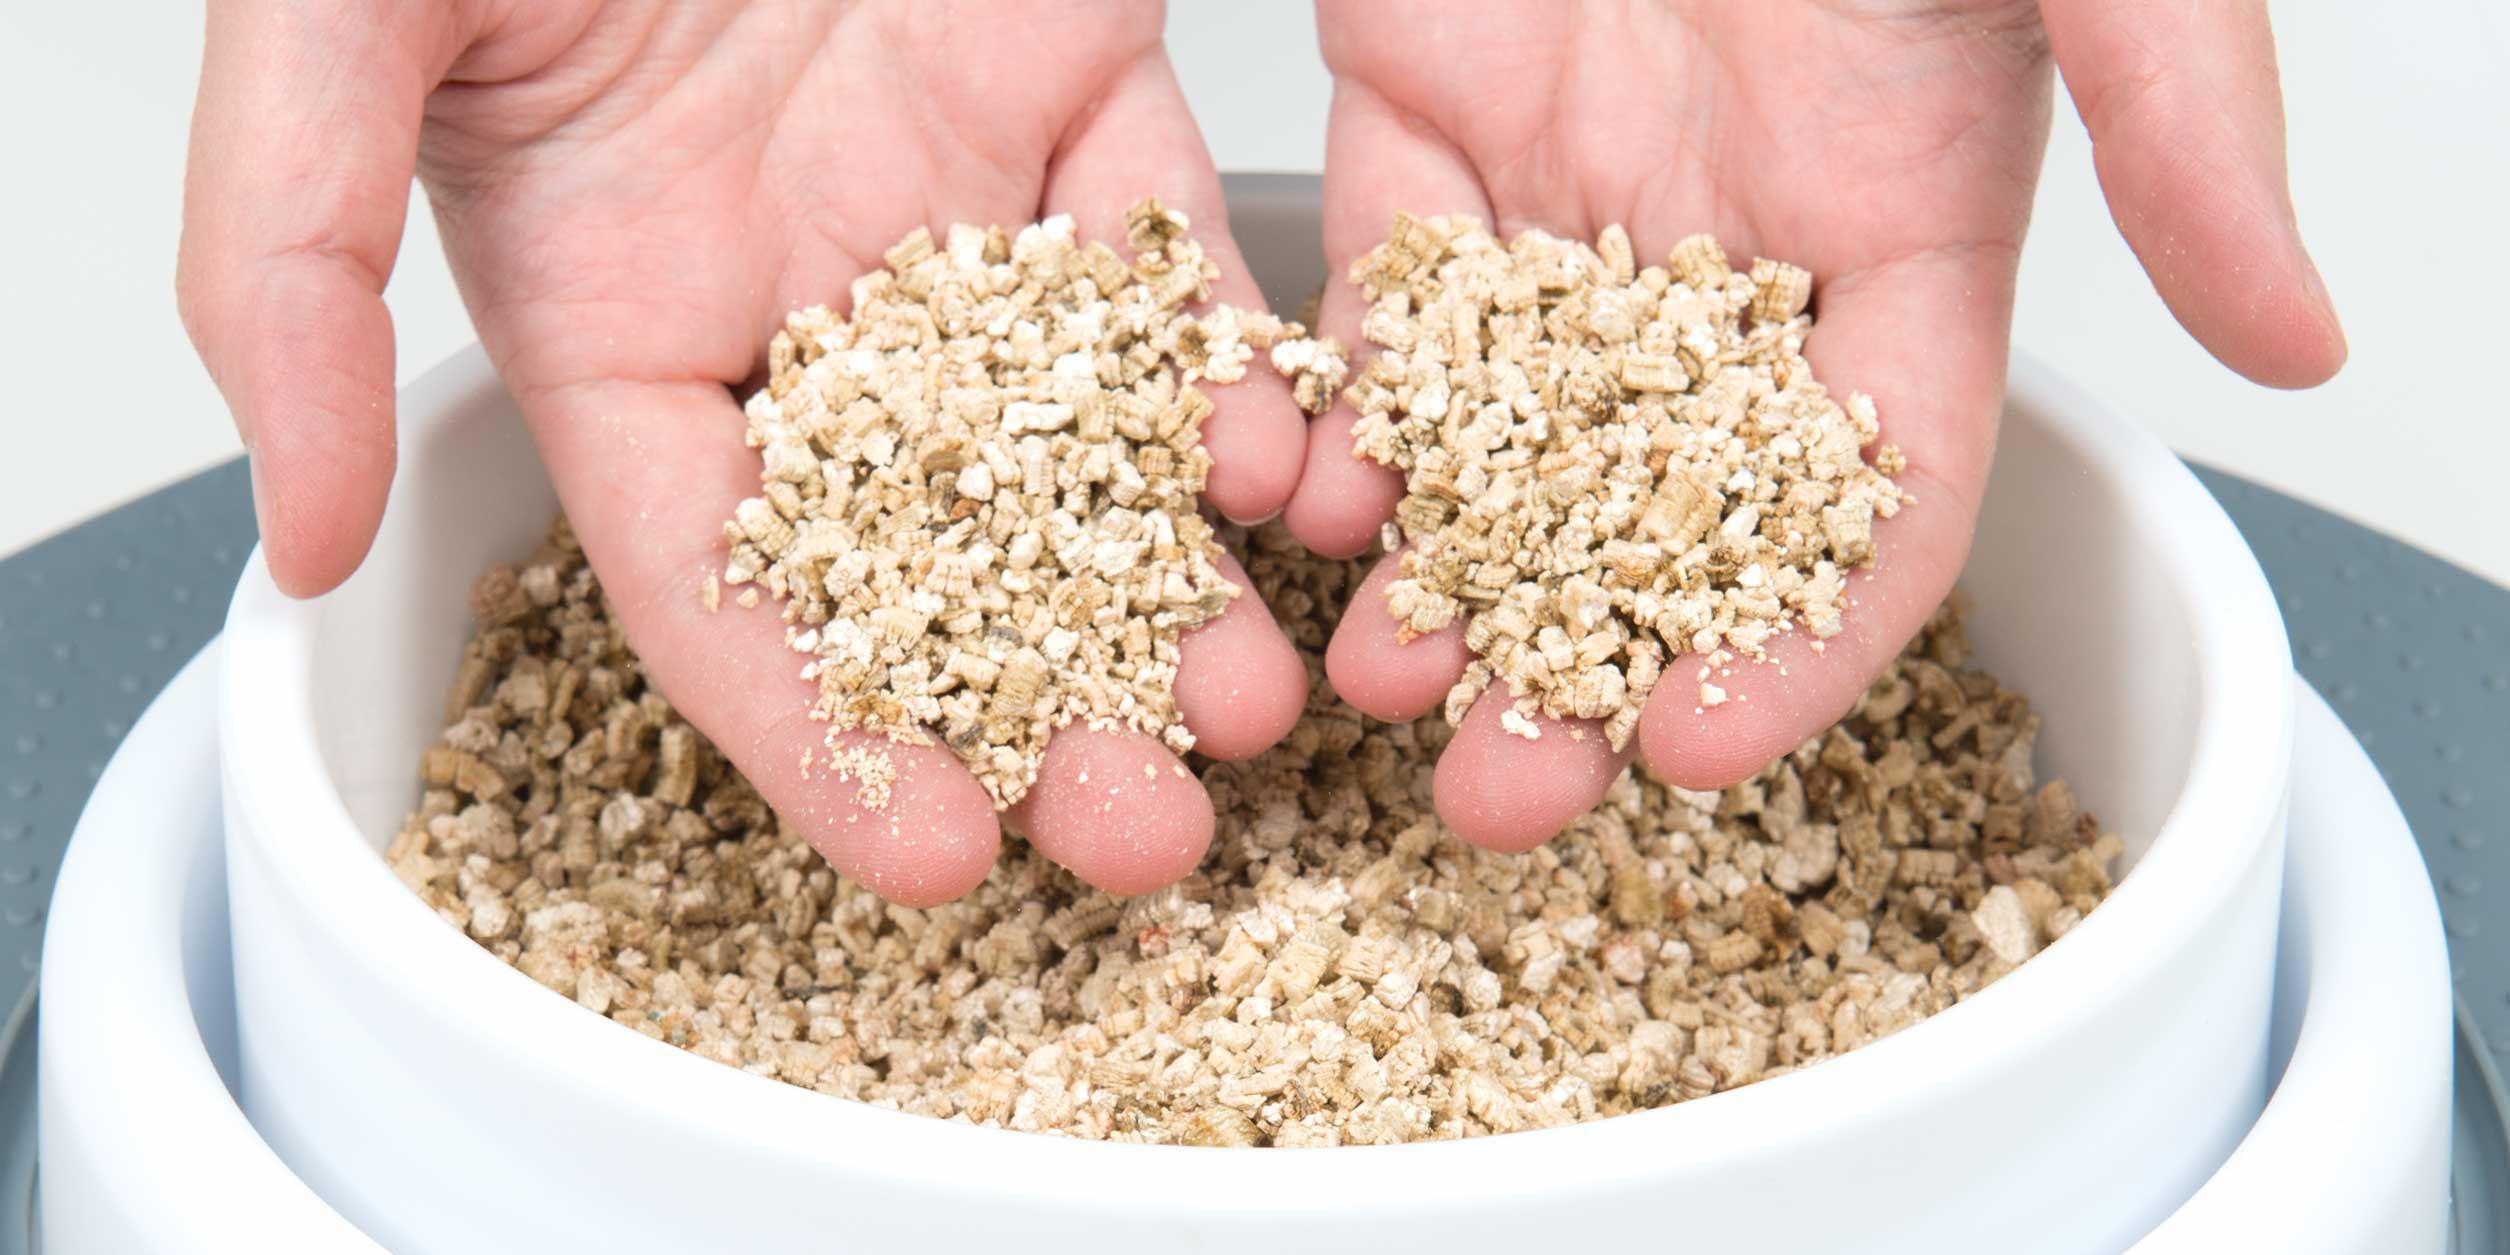 Hands holding up vermiculite for the grass planter